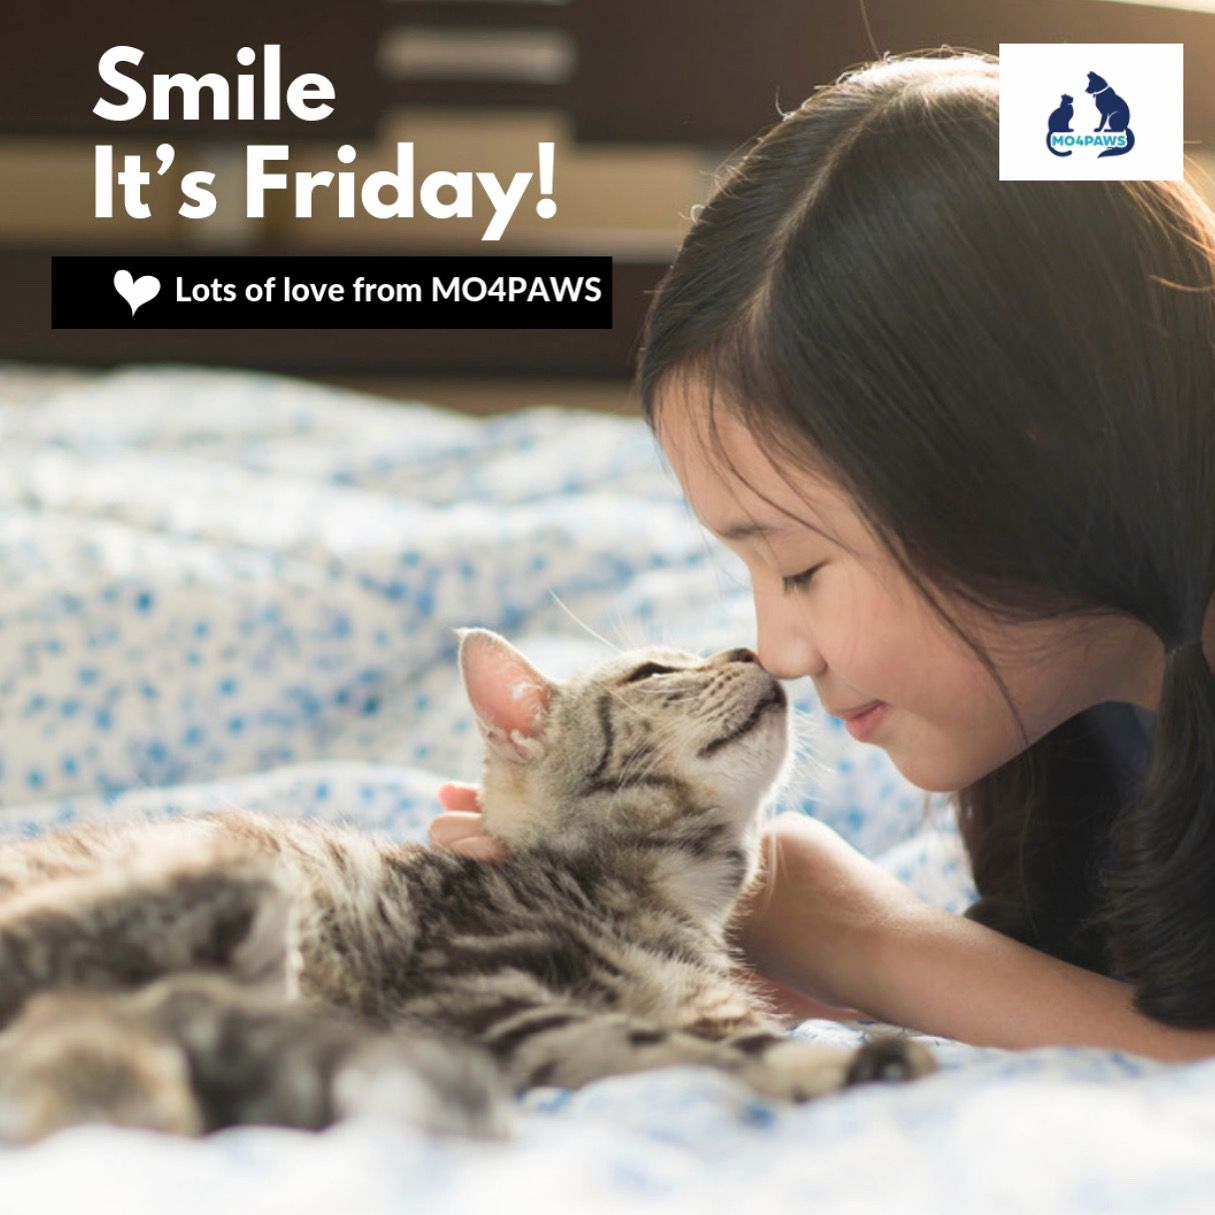 Happy Friday to everyone from the MO4PAWS team! mo4paws